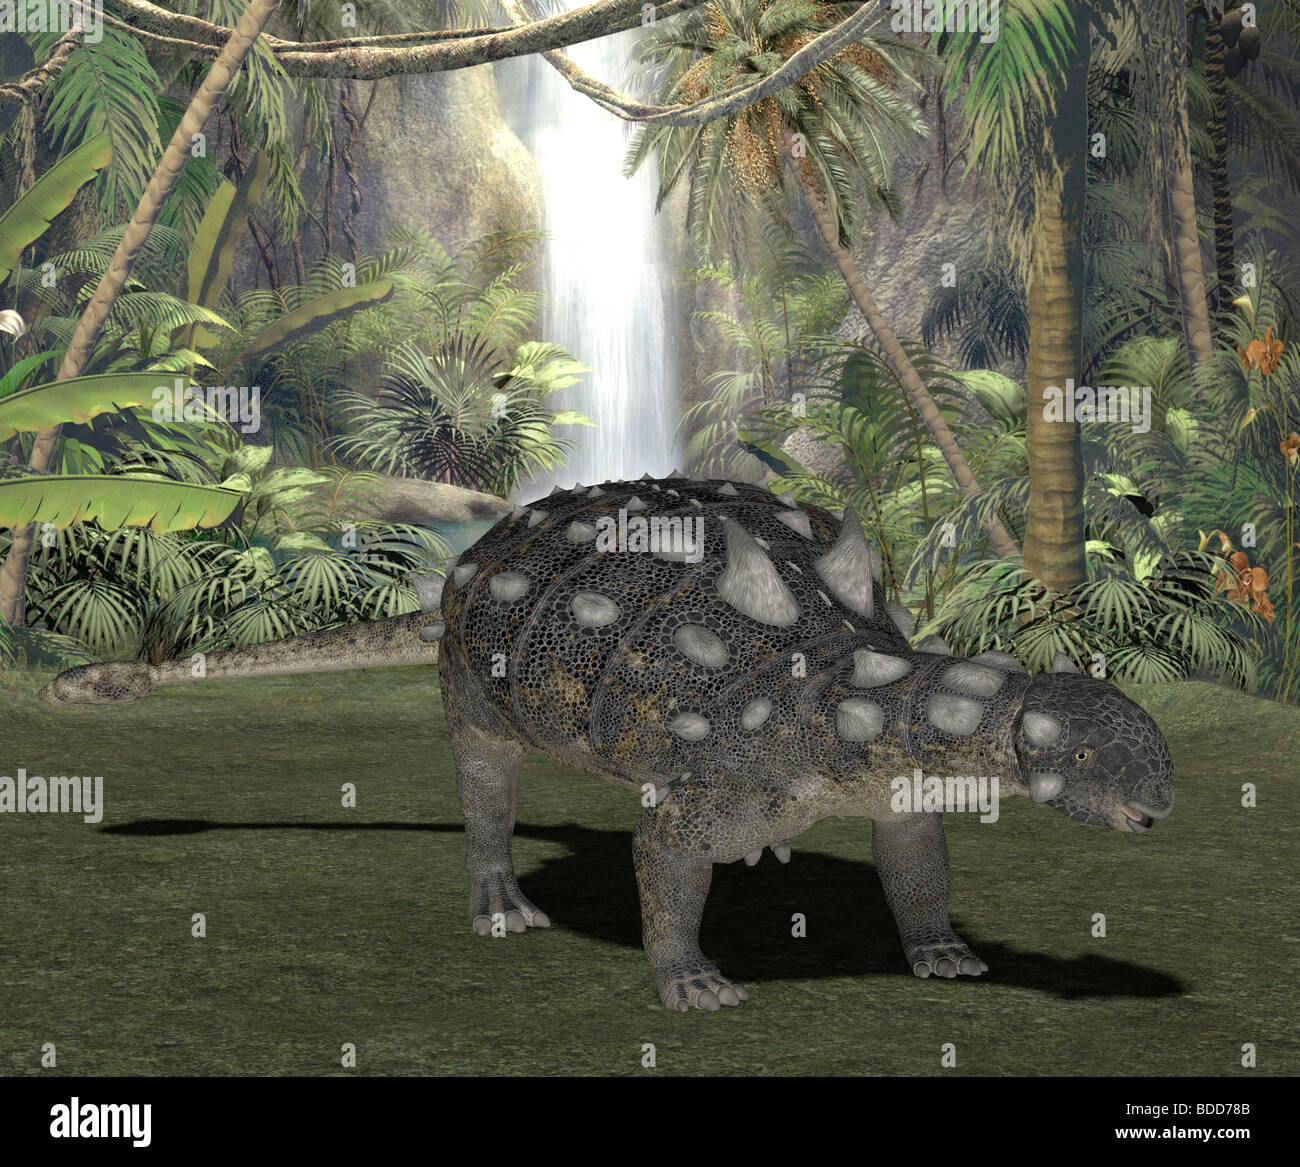 dinosaur euoplocephalus Stock Photo